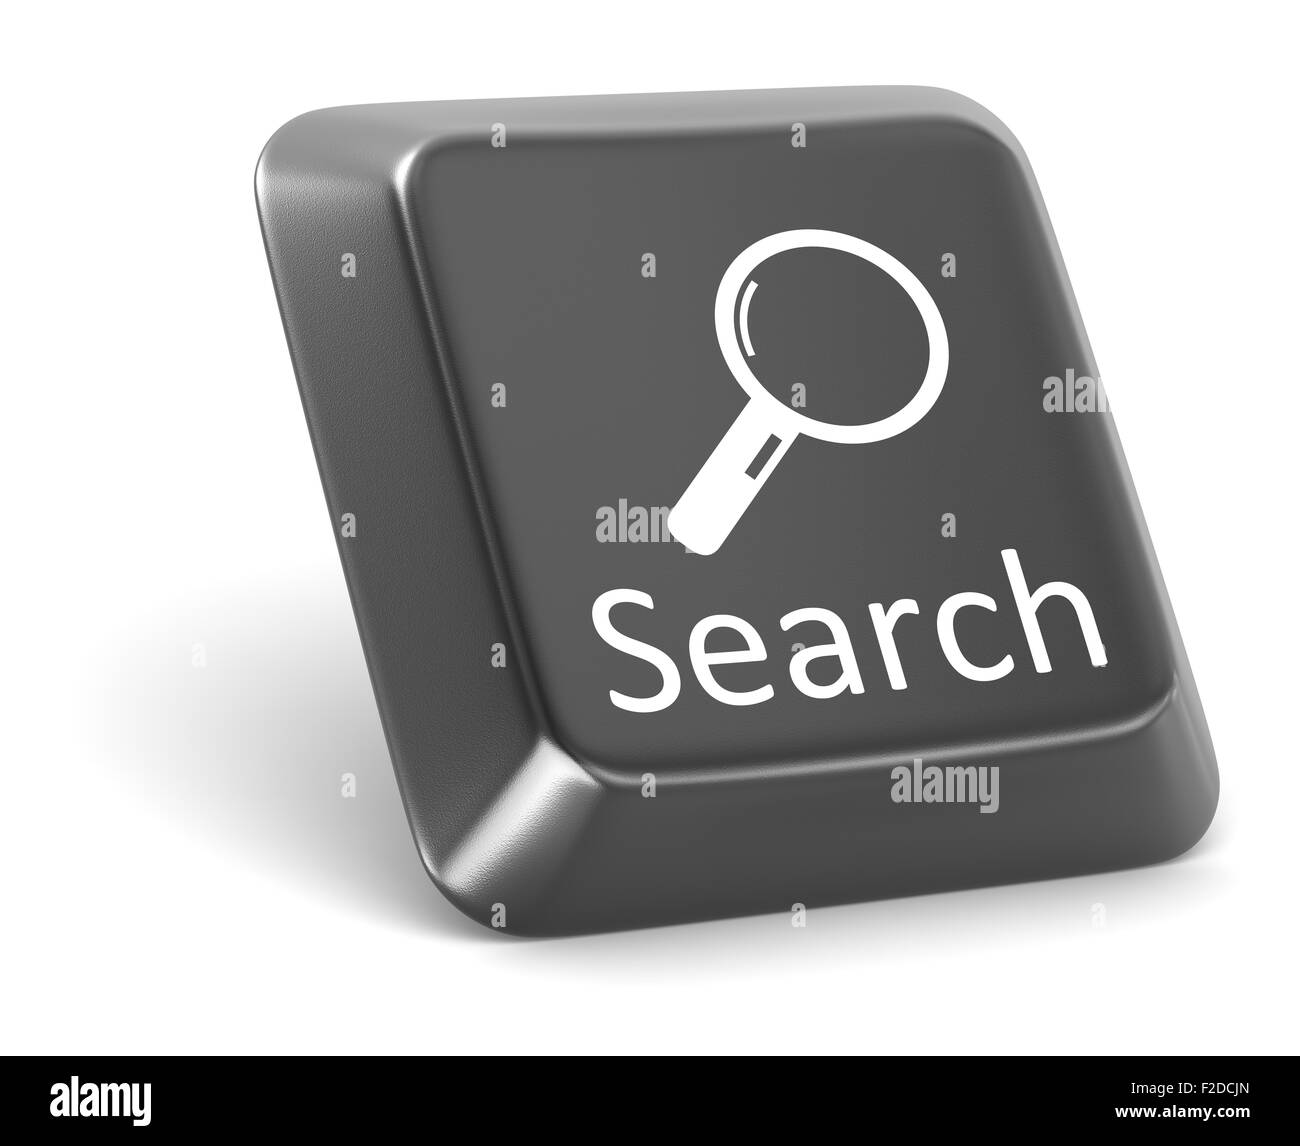 Search button , This is a computer generated and 3d rendered picture. - Stock Image